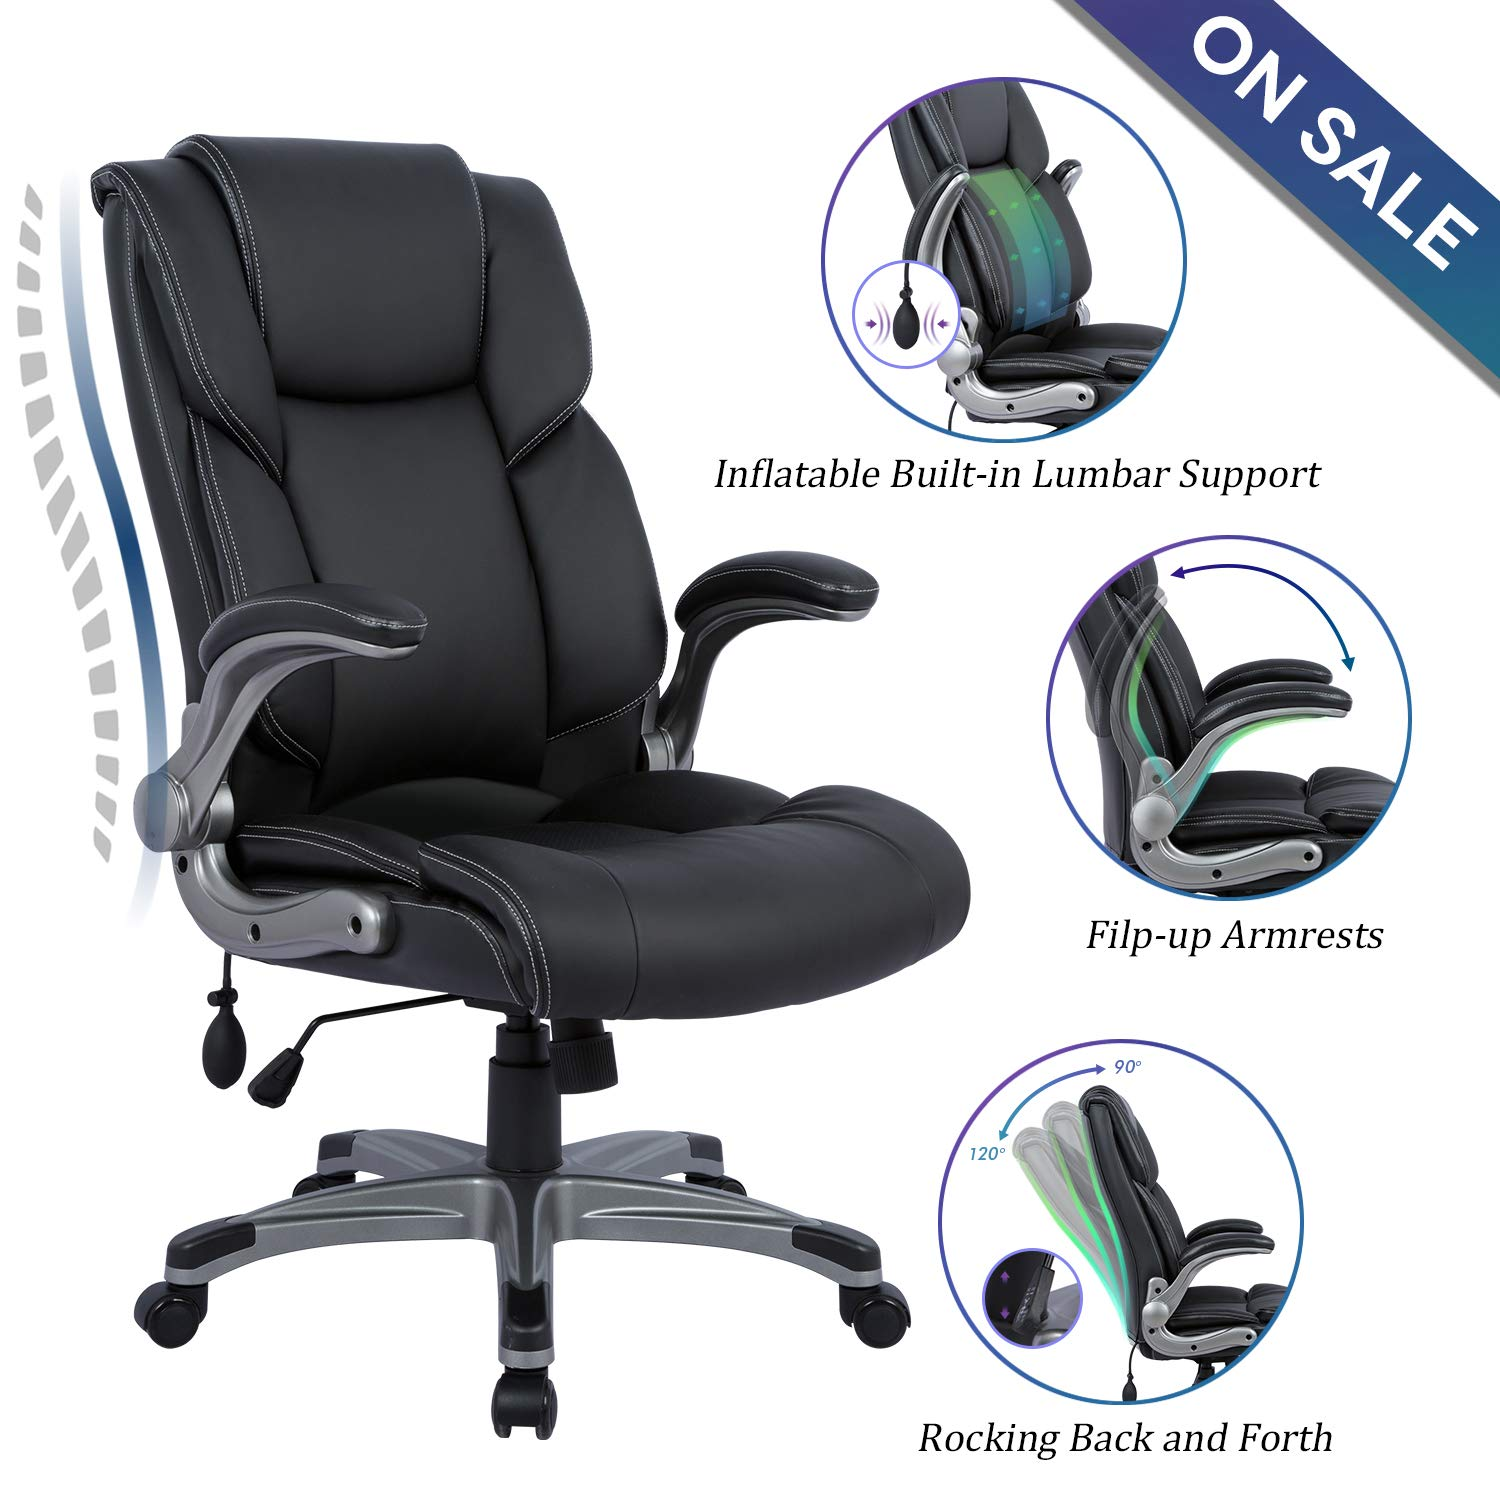 Statesville High Back Office Chair – Ergonomic Computer Desk Executive Task Swivel Chair – Adjustable Built in Lumbar Support, Tilt Angle and Flip-Up Arms, 360 Degree Rotation for Workers Students